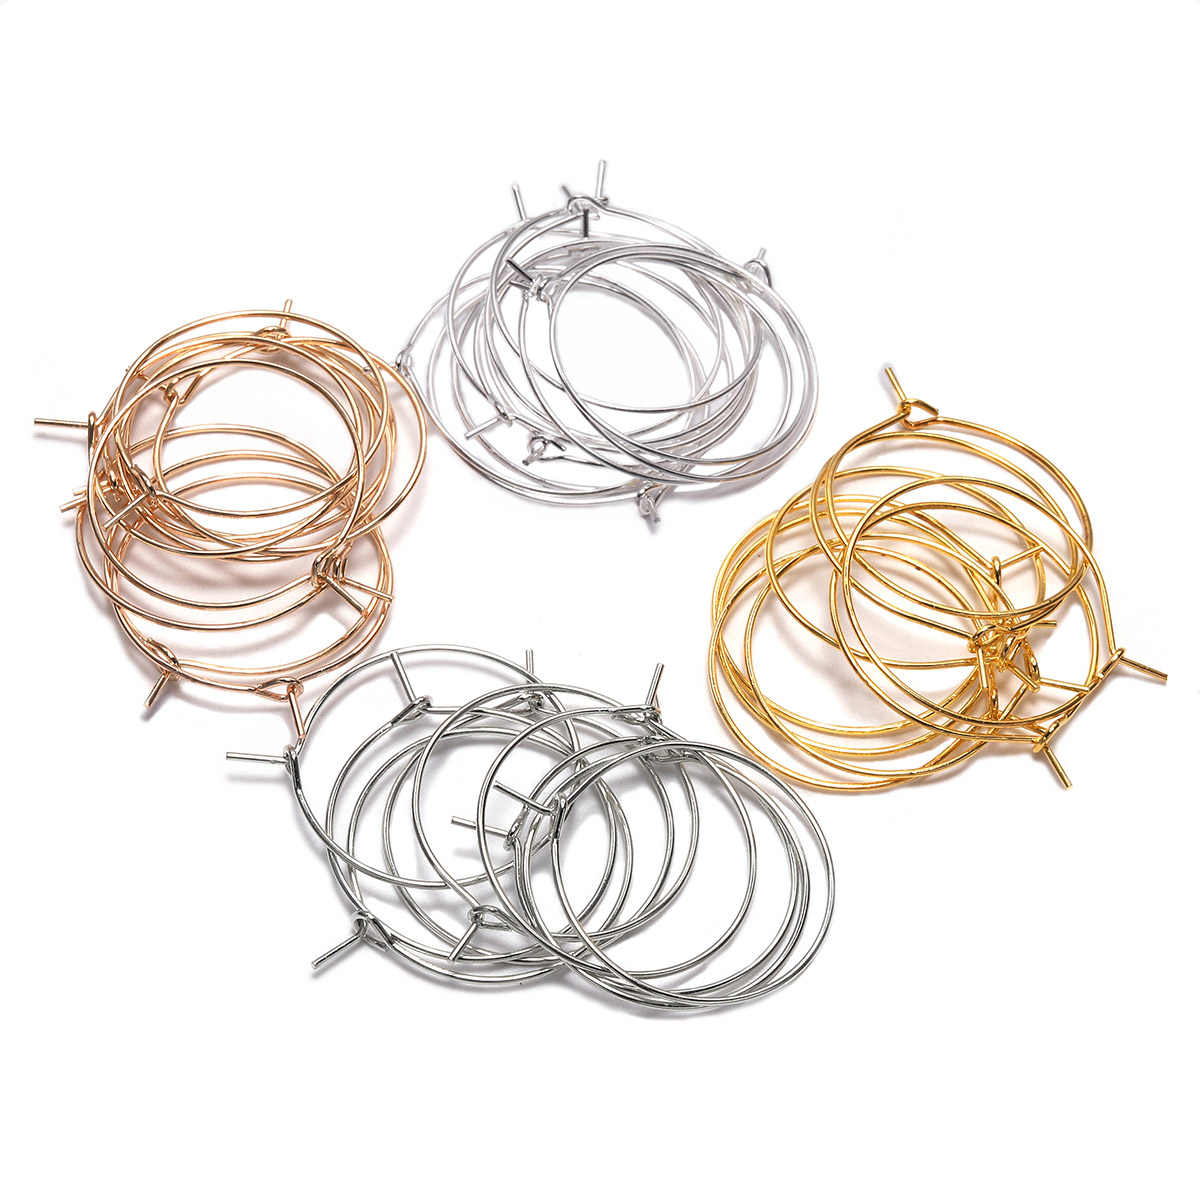 50pcs/lot 20 25 30 35 mm Silver KC Gold Hoops Earrings Big Circle Ear Wire Hoops Earrings Wires For DIY Jewelry Making Supplies